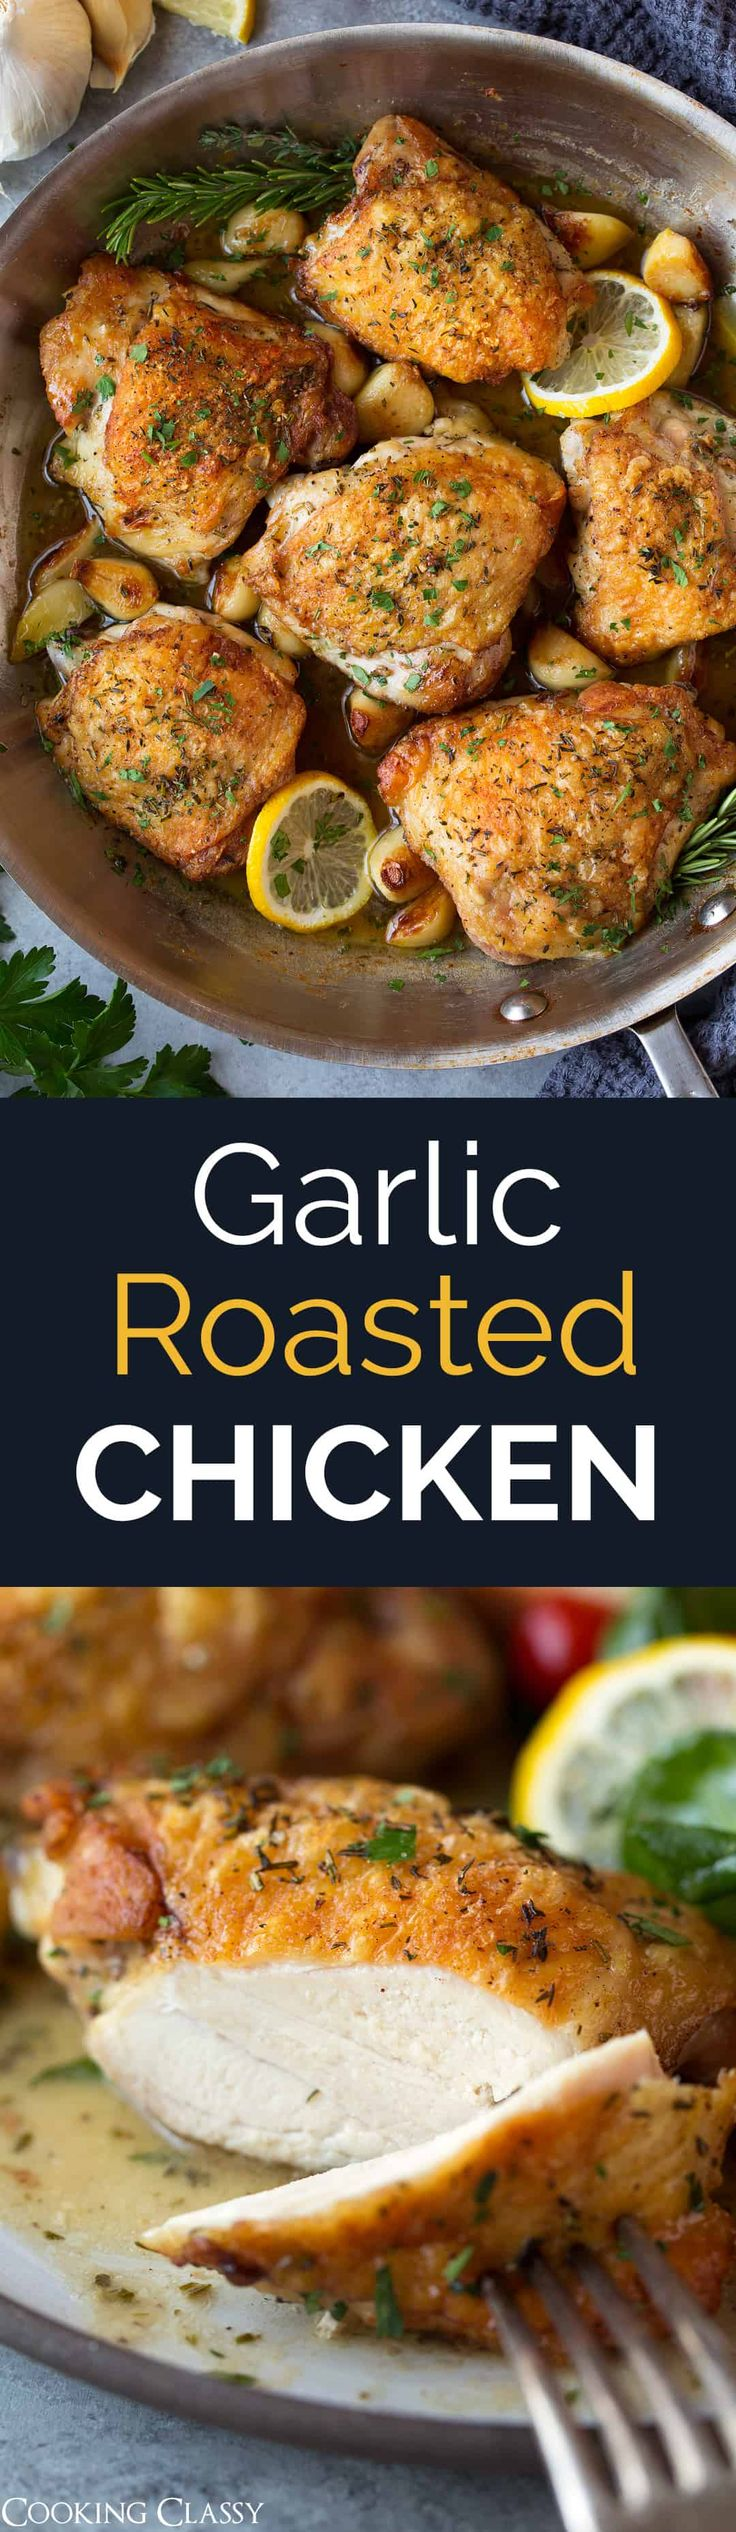 Garlic Roasted Chicken - one of the best chicken dishes I've had! Perfectly tender chicken with amazingly crispy skin, infused with fresh herb flavor, served over a blanket of tangy pan sauce and paired with an abundance of fresh garlic. Amazingly good! #chicken #recipe #easydinner #garlicchicken #healthyrecipe via @cookingclassy